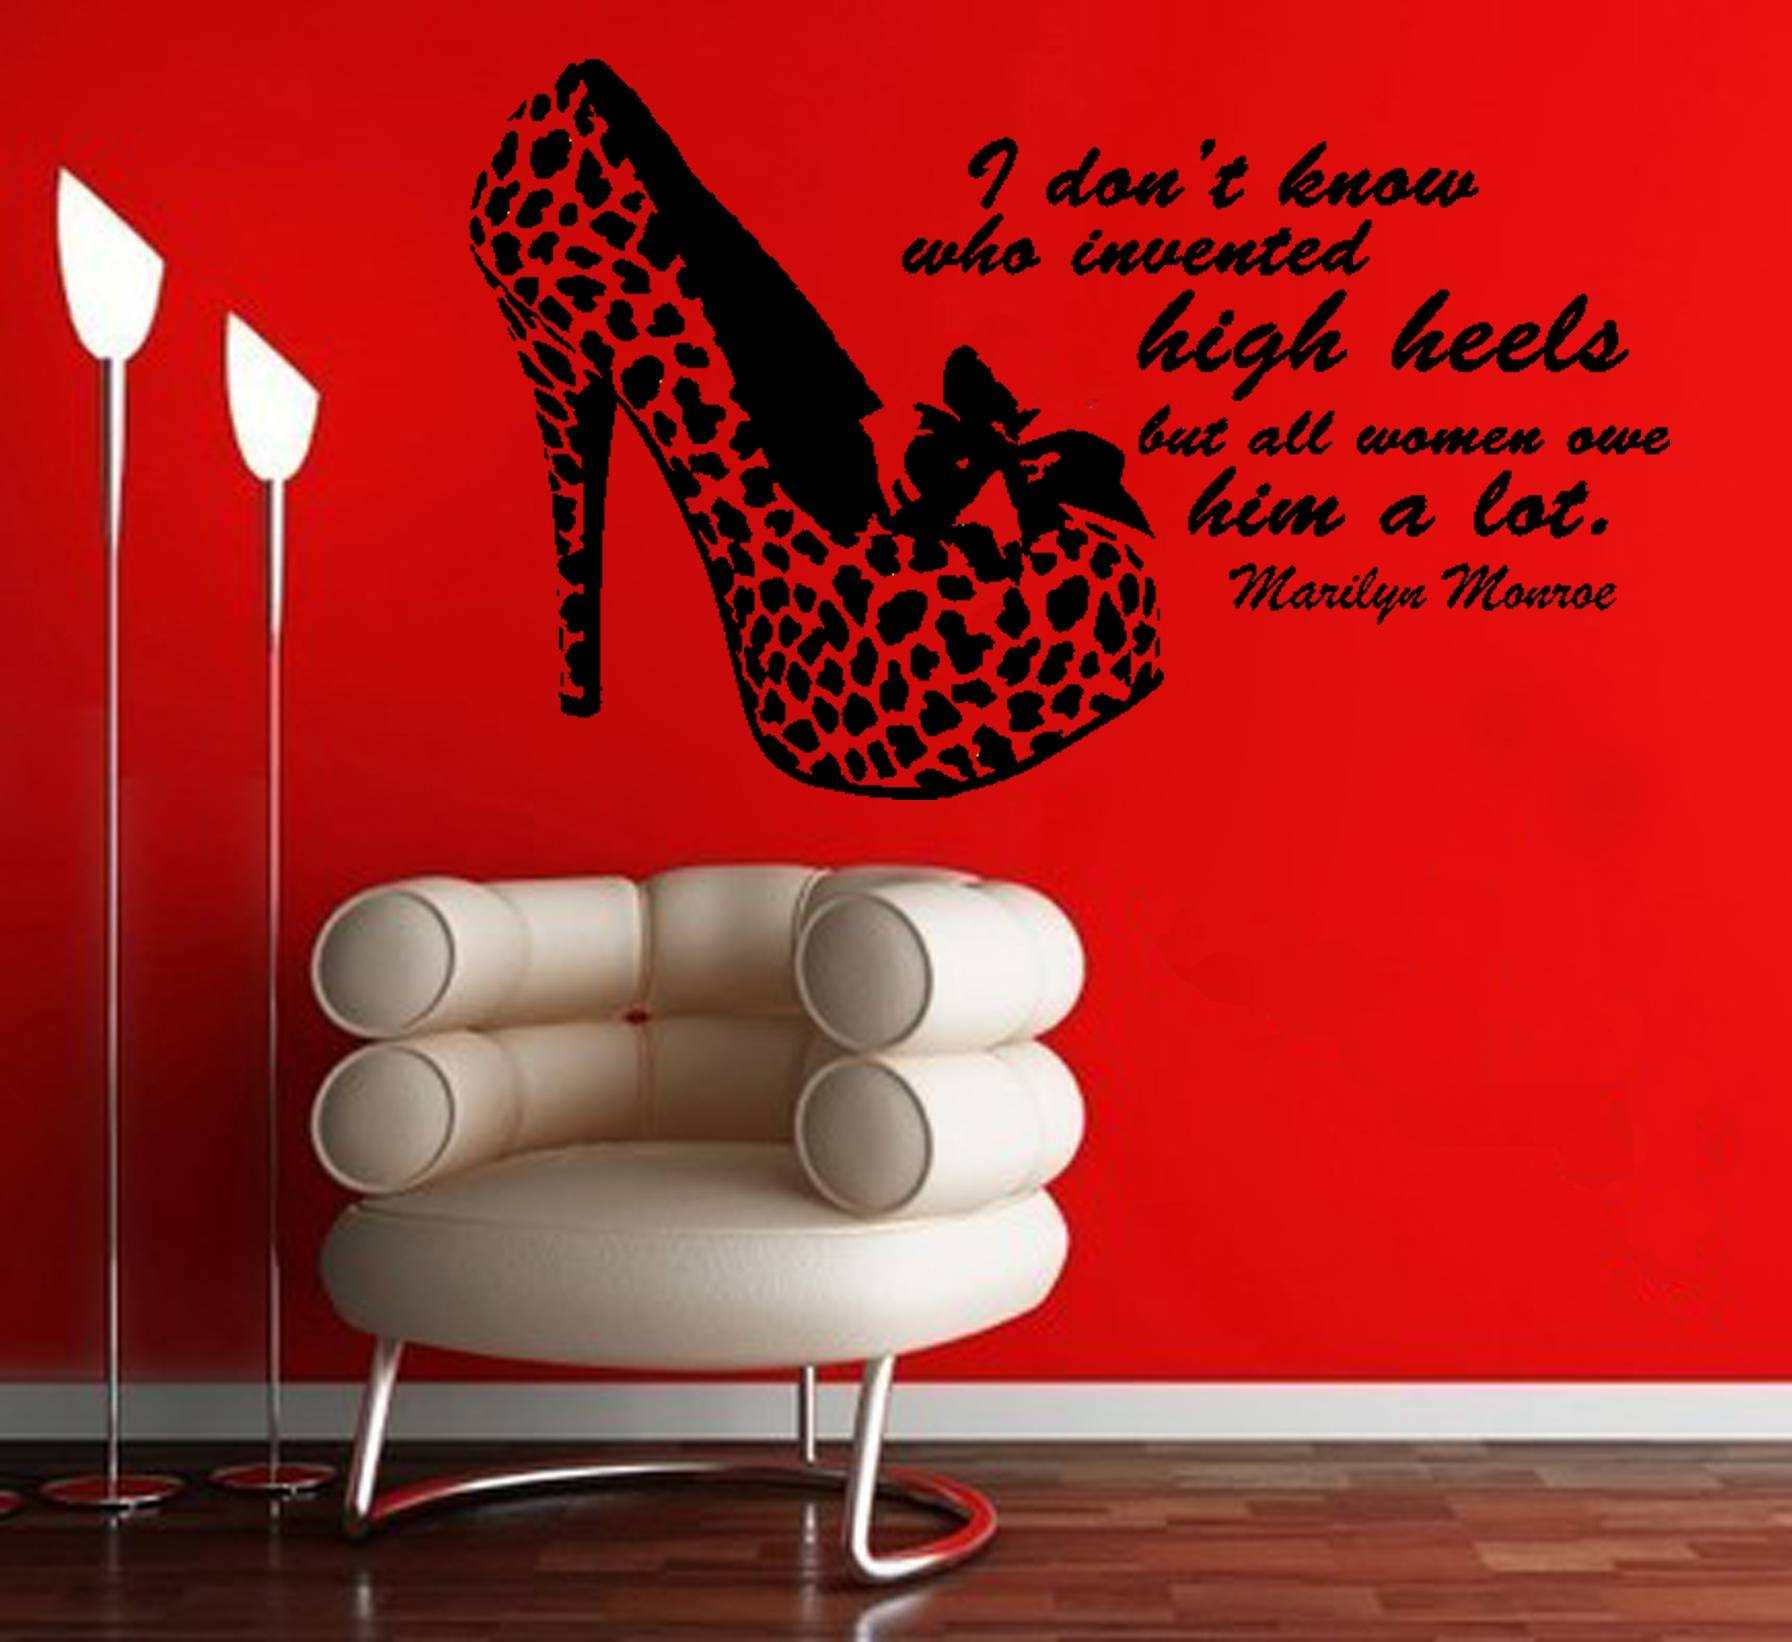 Trendy Marilyn Monroe Quote Decal High Heels Wall Sticker I Do Not With Regard To 2018 Marilyn Monroe Wall Art Quotes (View 11 of 25)